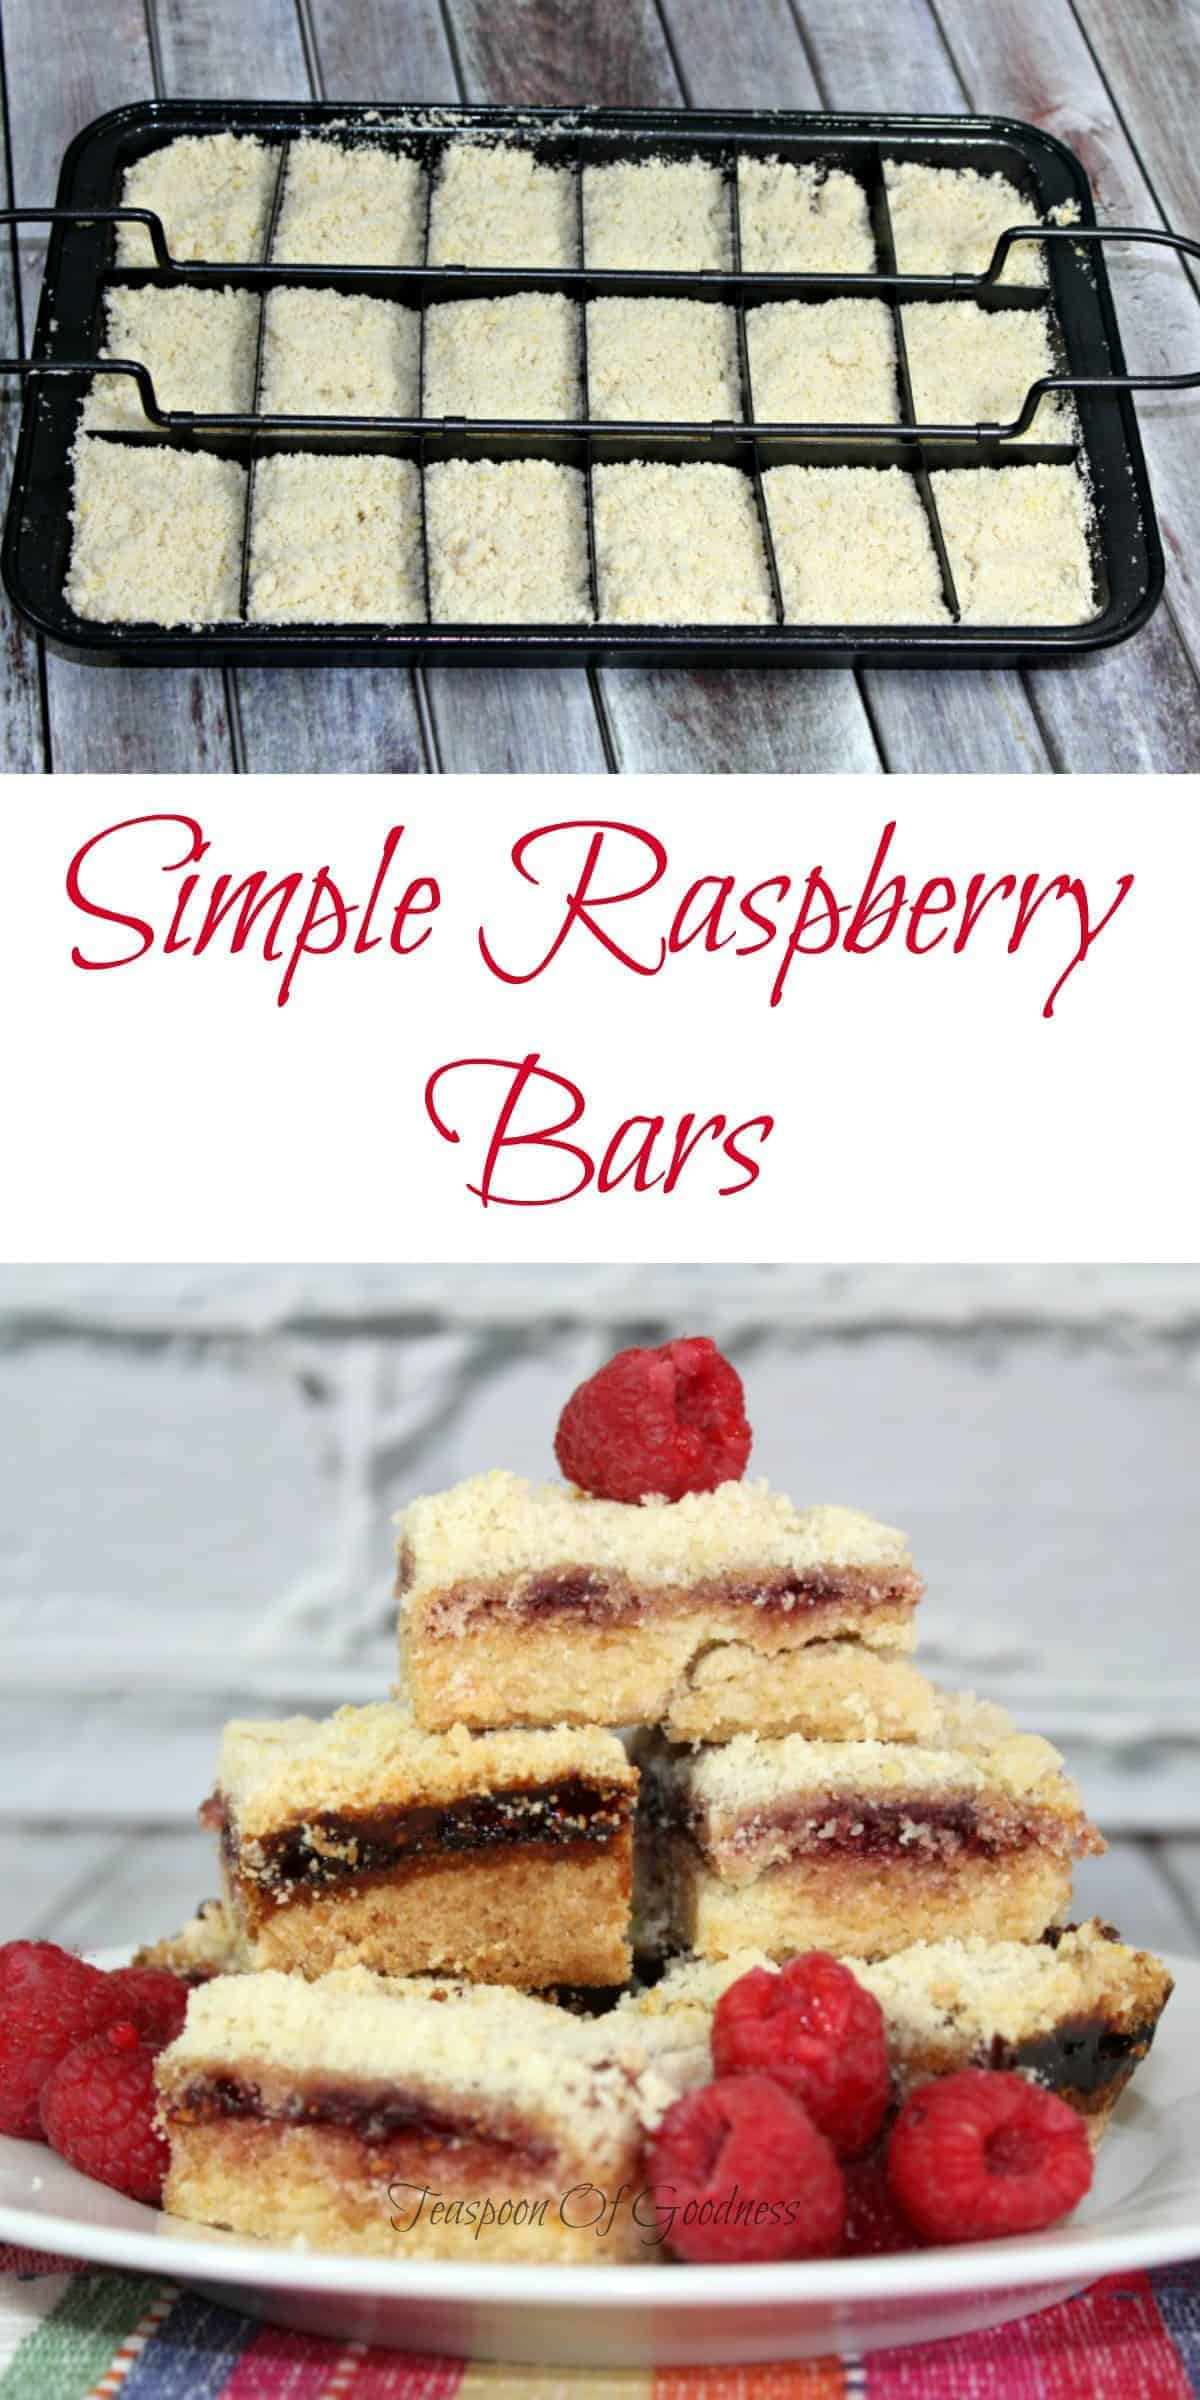 This simple raspberry bars recipe is a great cross between a blondie and a fruit bar that gives you everything you love about raspberry flavor. - Teaspoon Of Goodness